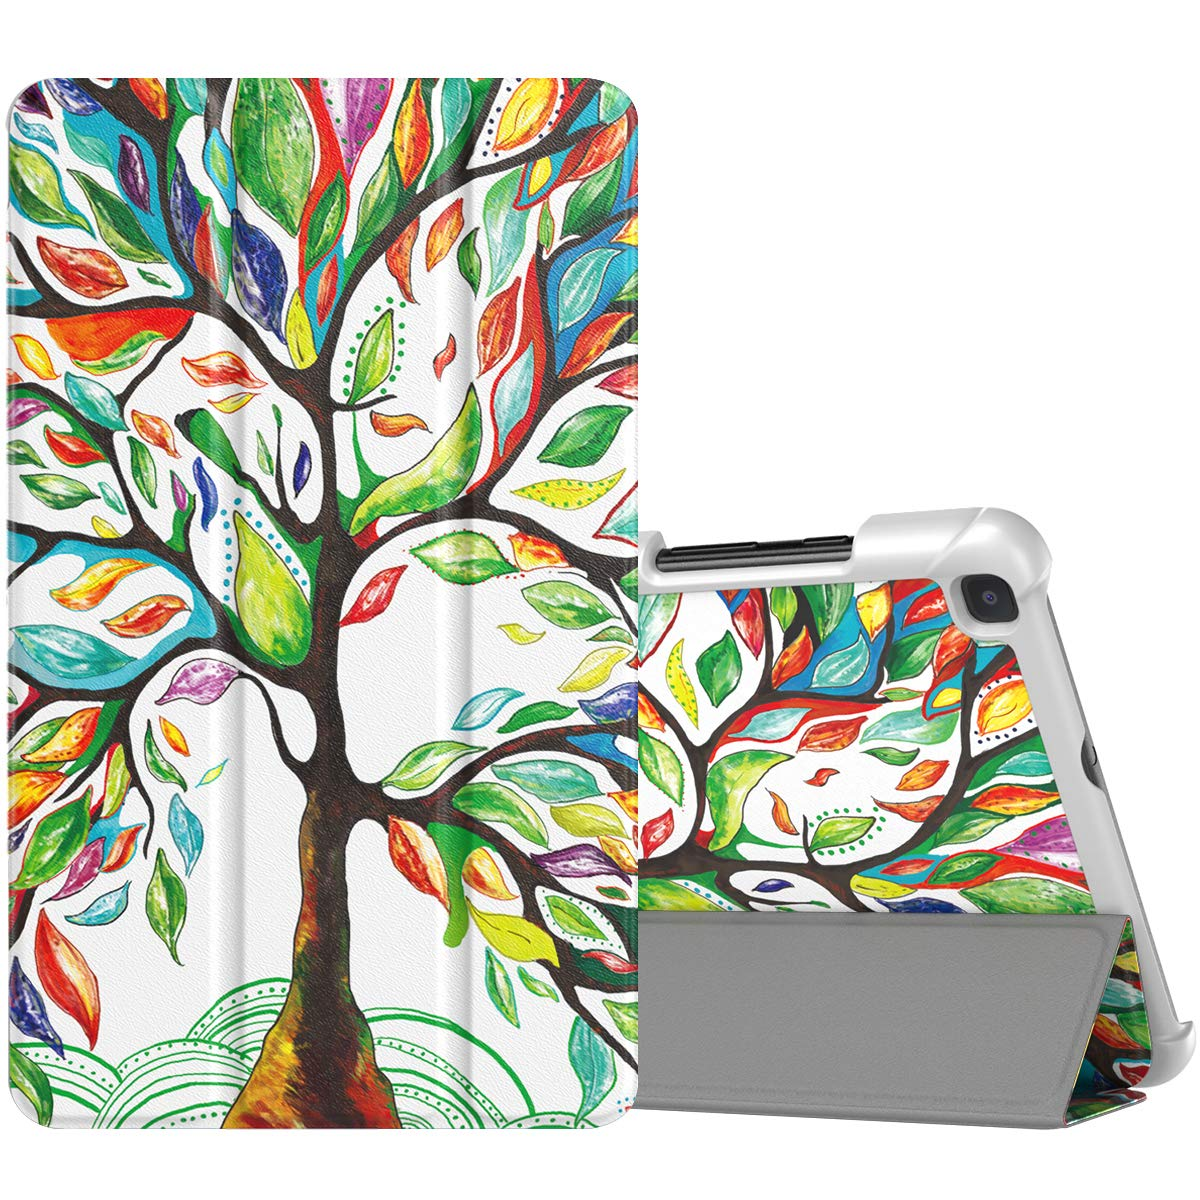 TiMOVO Folio Case for Samsung Galaxy Tab A 8.0 2019 (T290/T295),Premium Slim Folding PU Leather Stand Cover Case for Galaxy Tab A 8.0 2019 Tablet,Not Fit Galaxy Tab A 8.0 2017/2018 - Lucky Tree